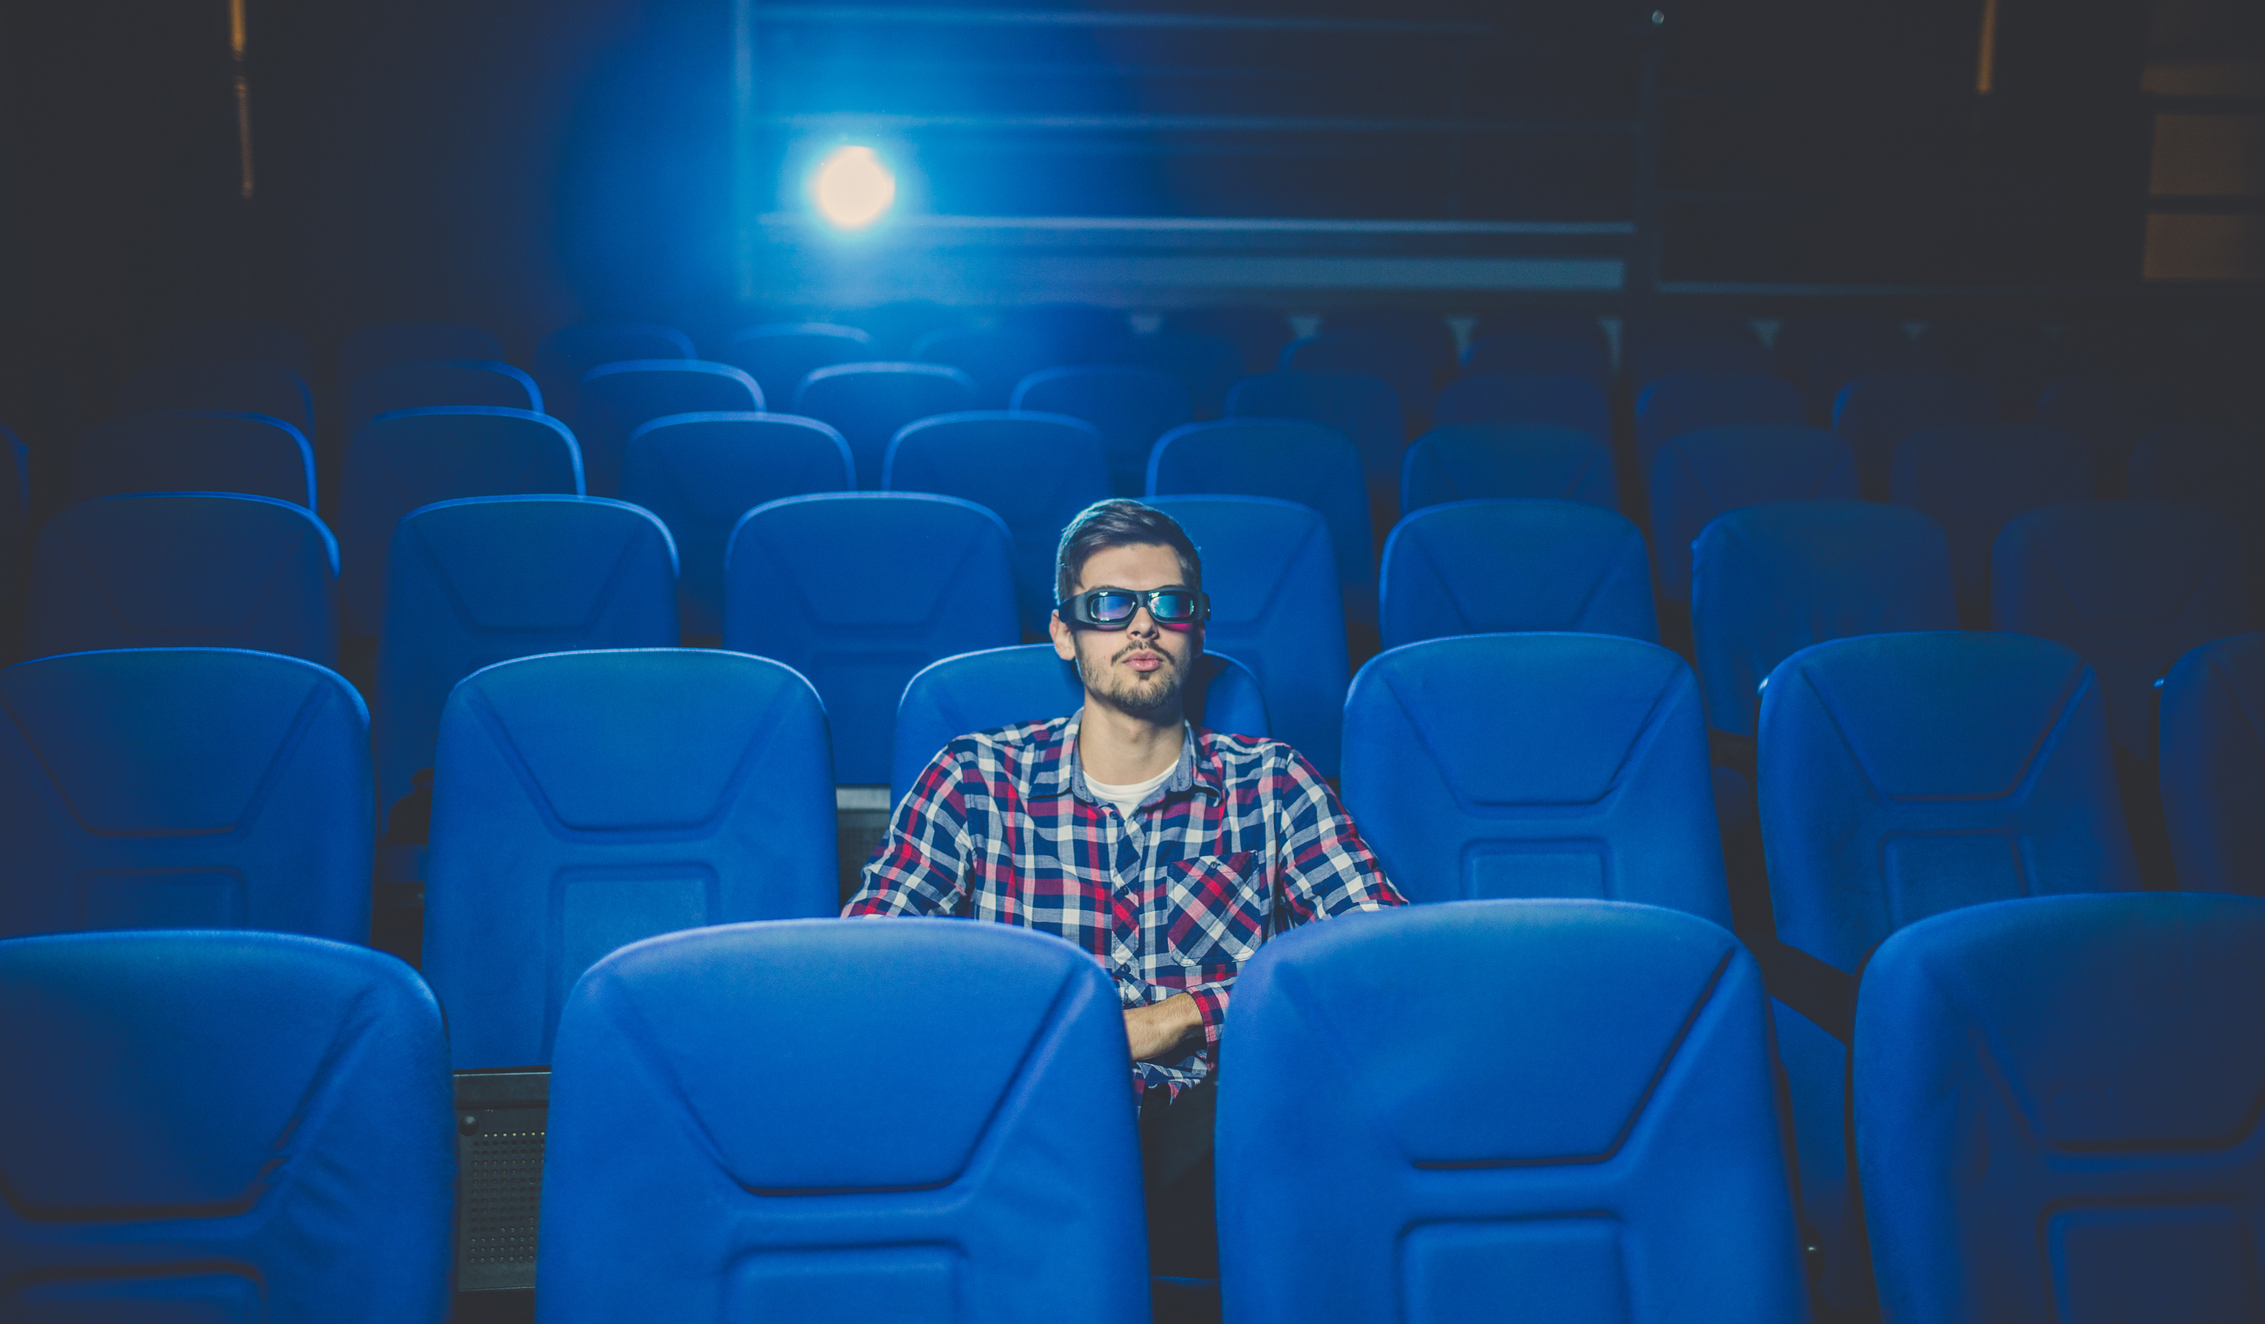 Guy at the cinema